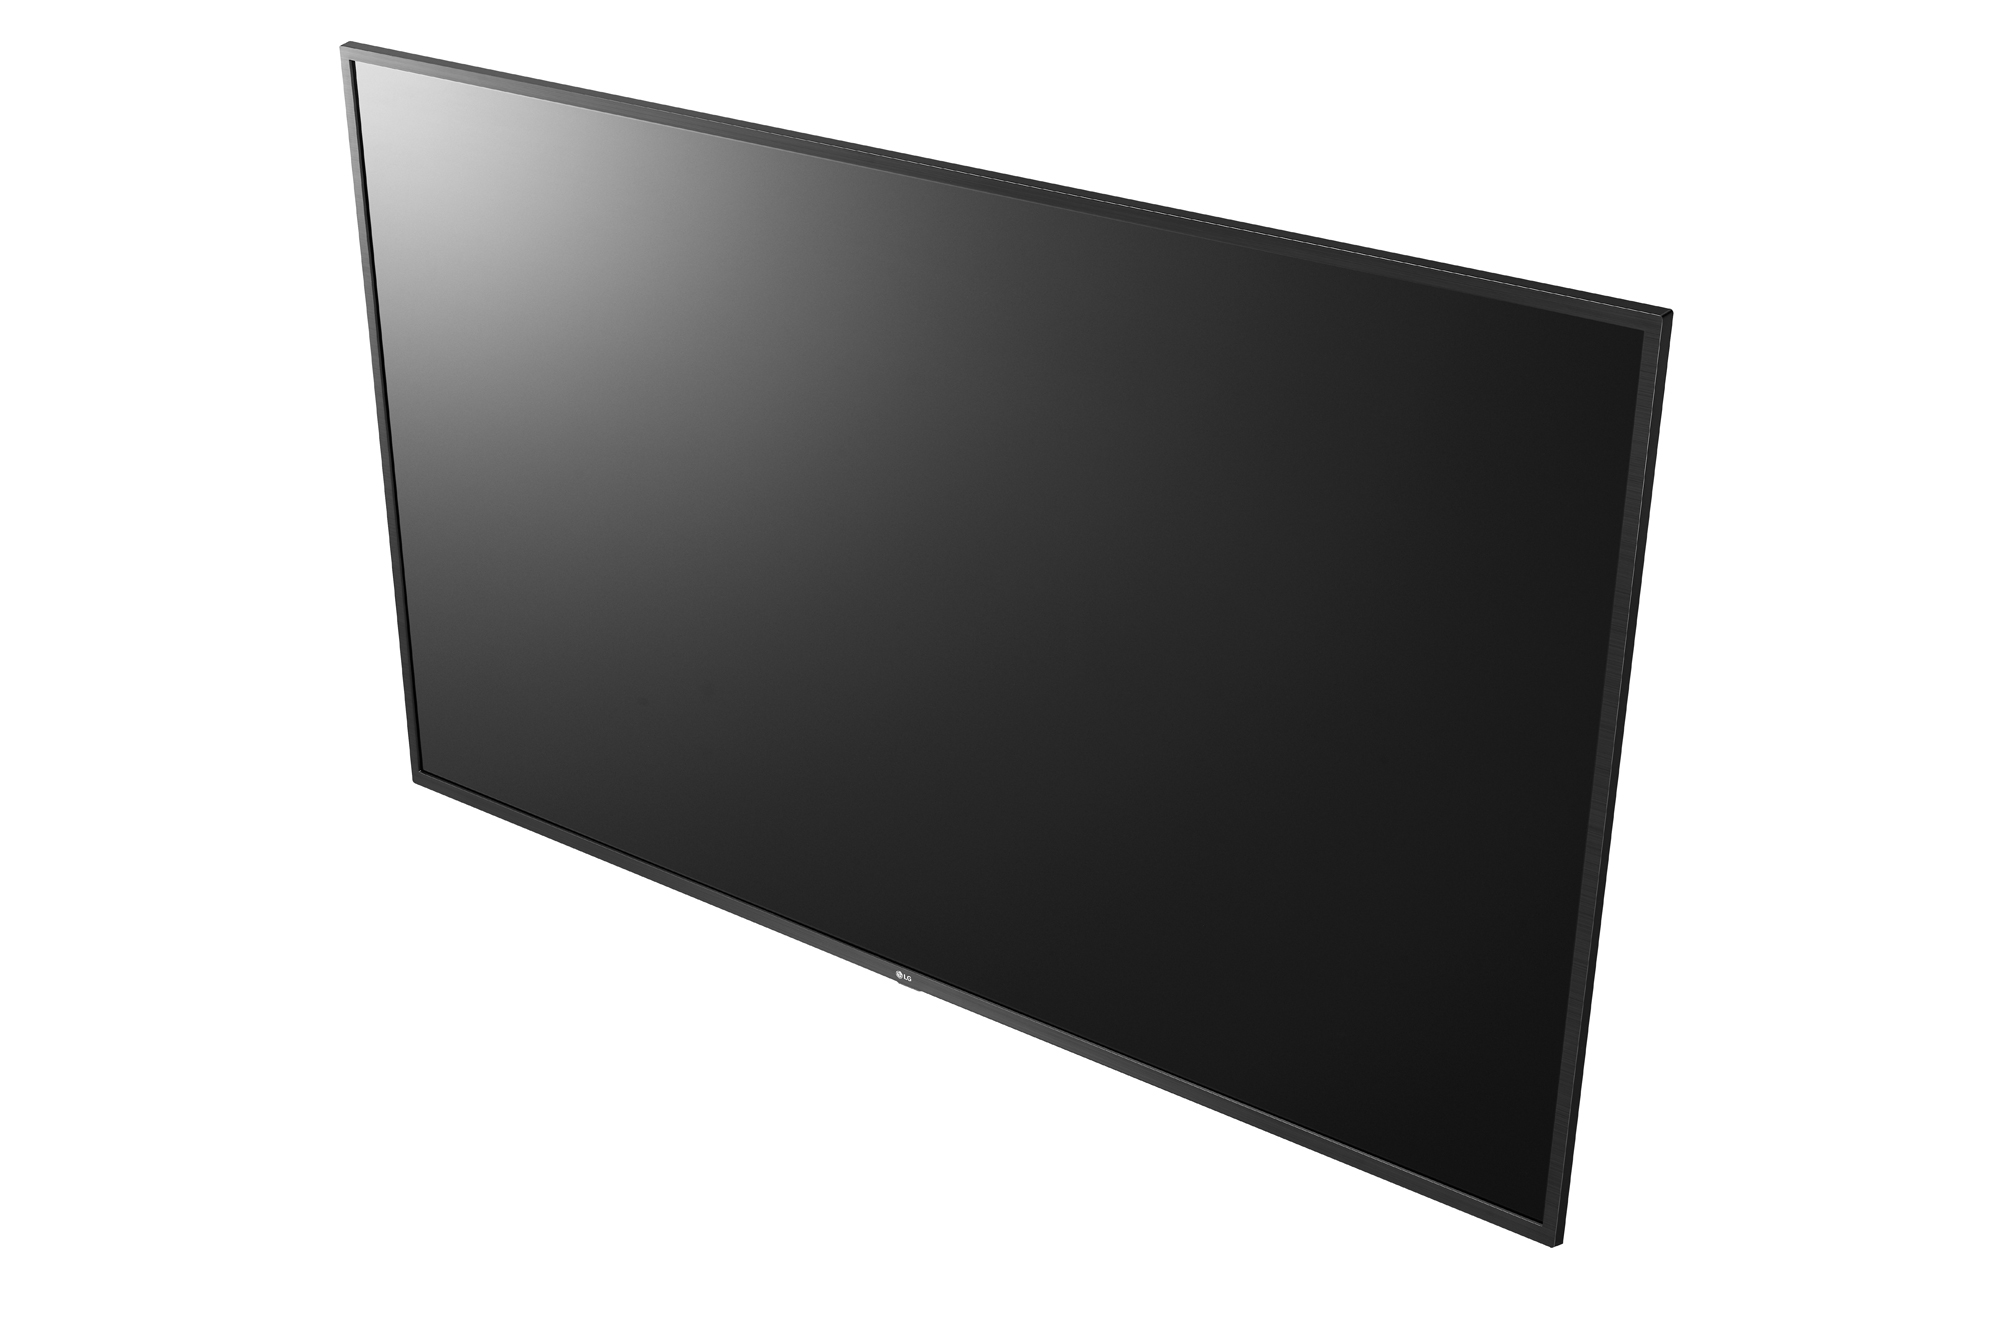 LG Smart TV Signage 55UT640S (EU)